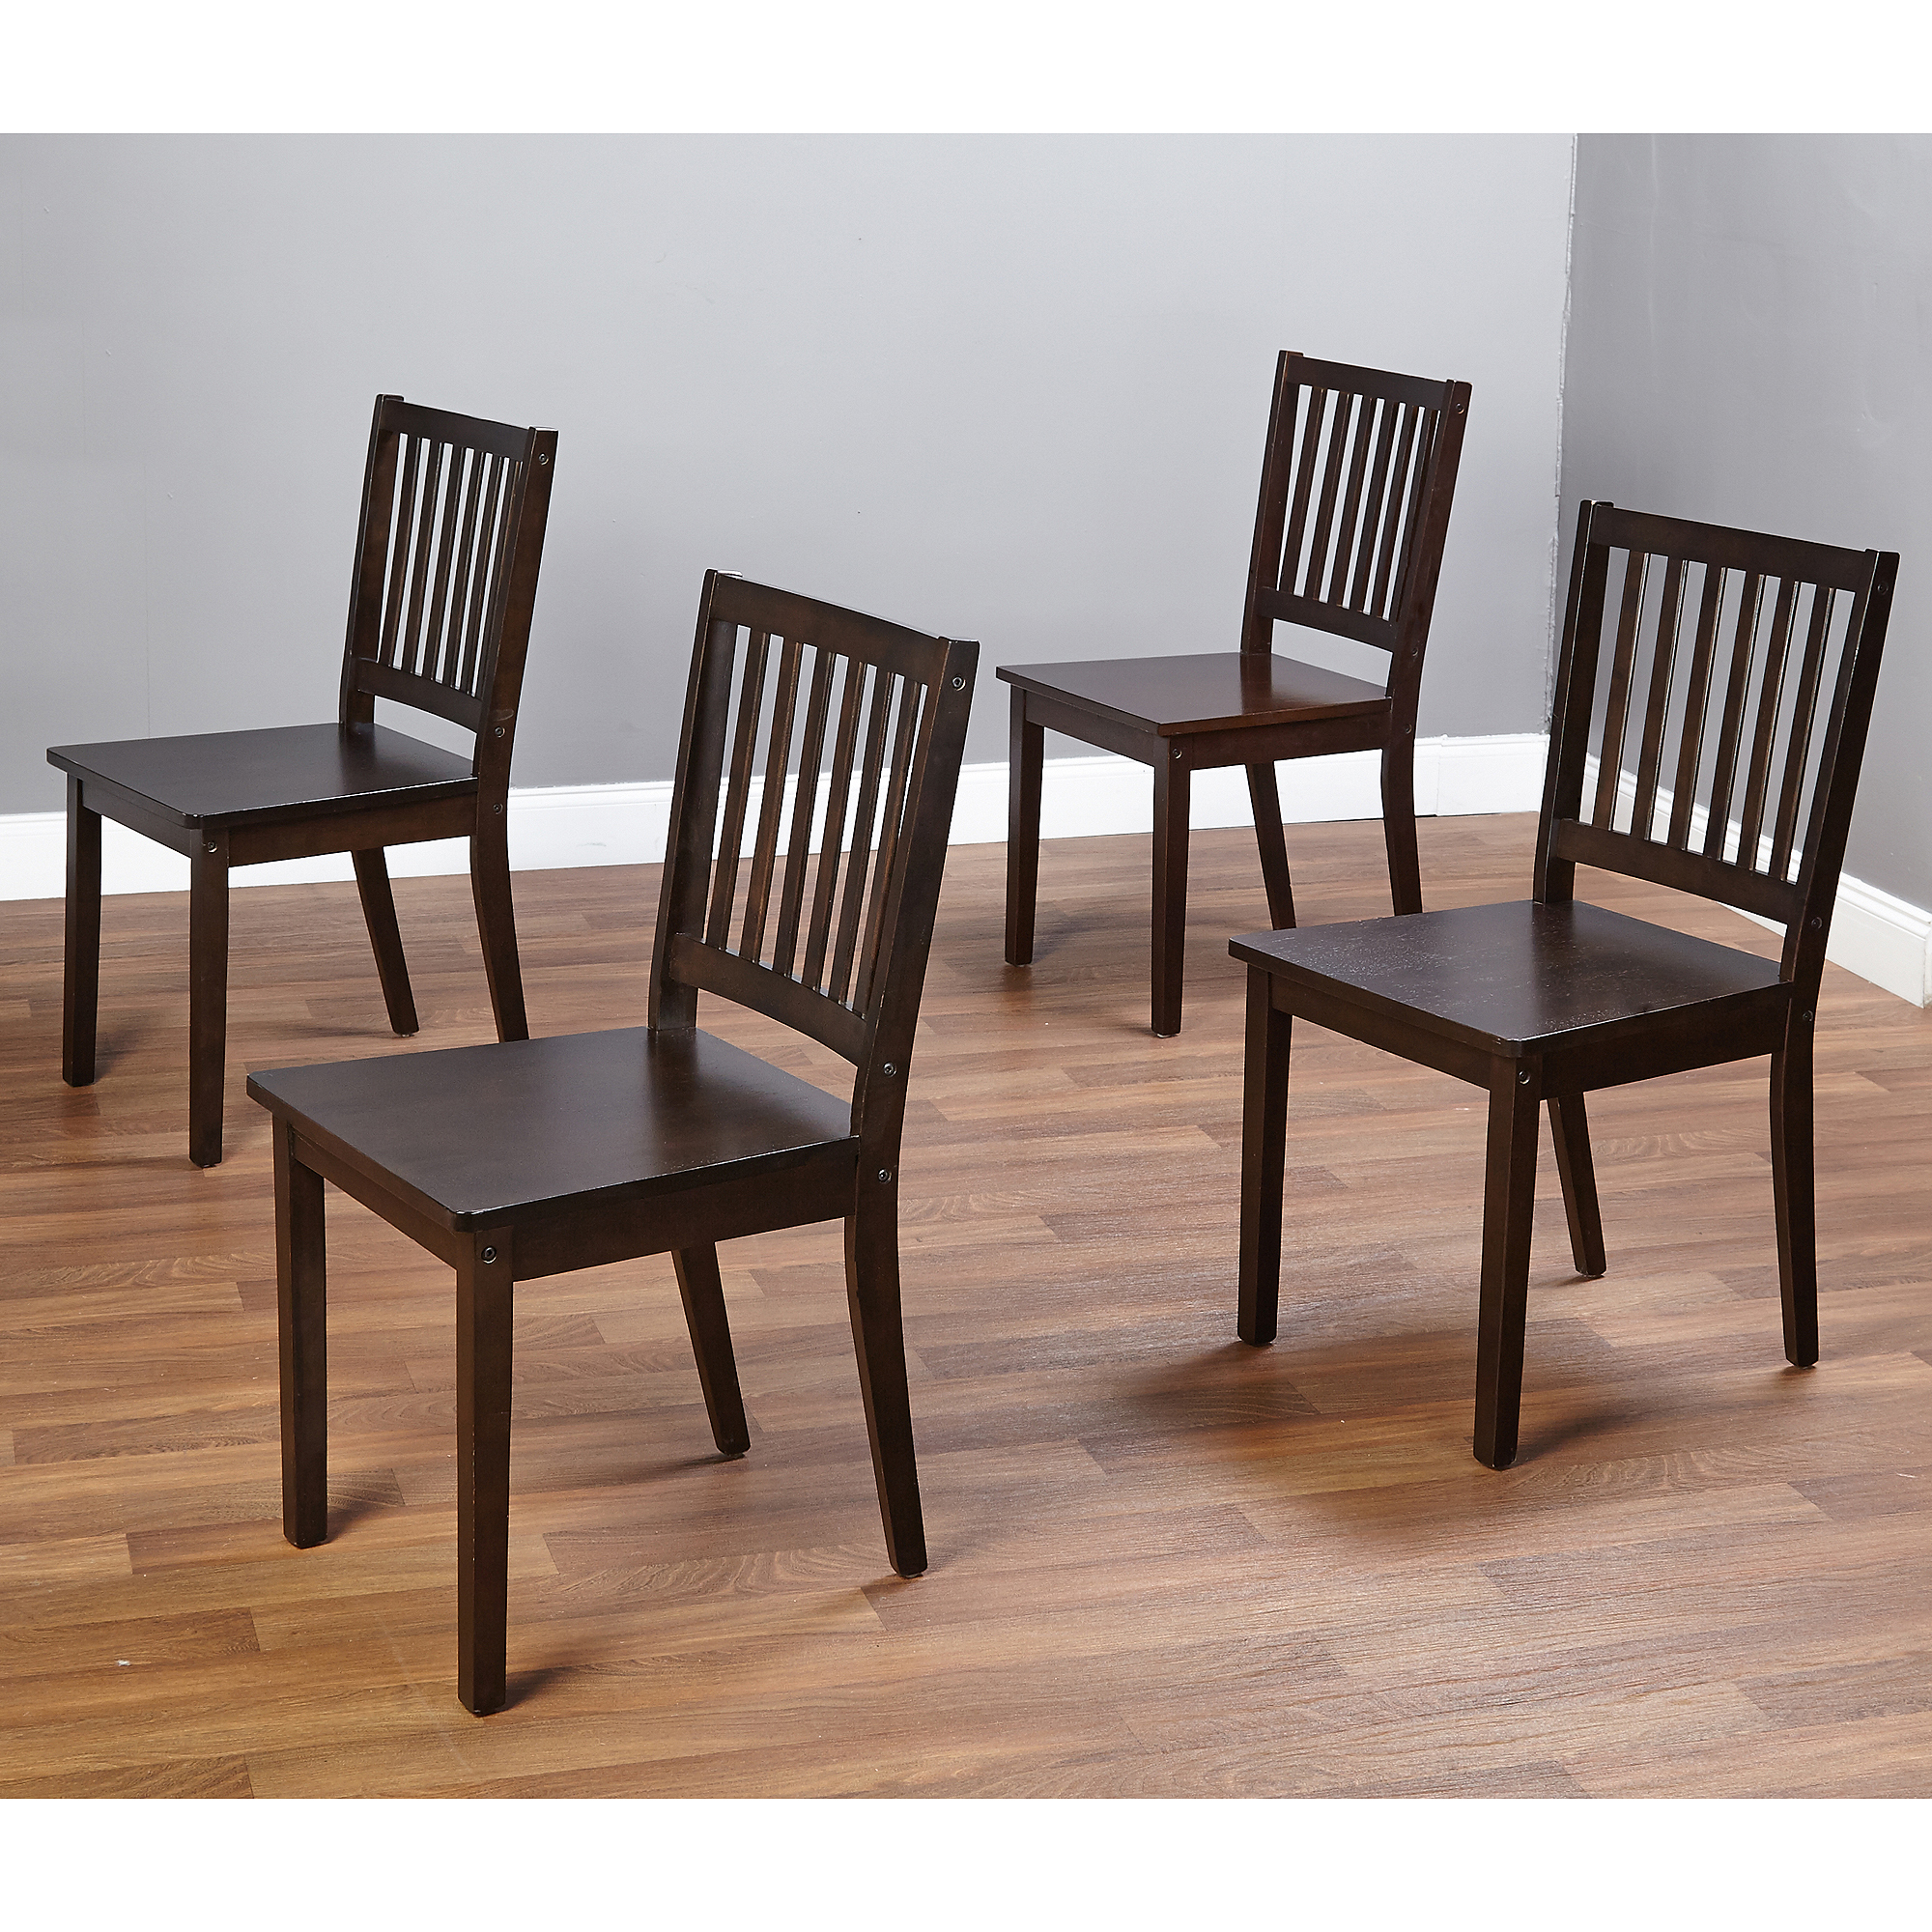 Delicieux Shaker Dining Chairs, Set Of 4, Espresso